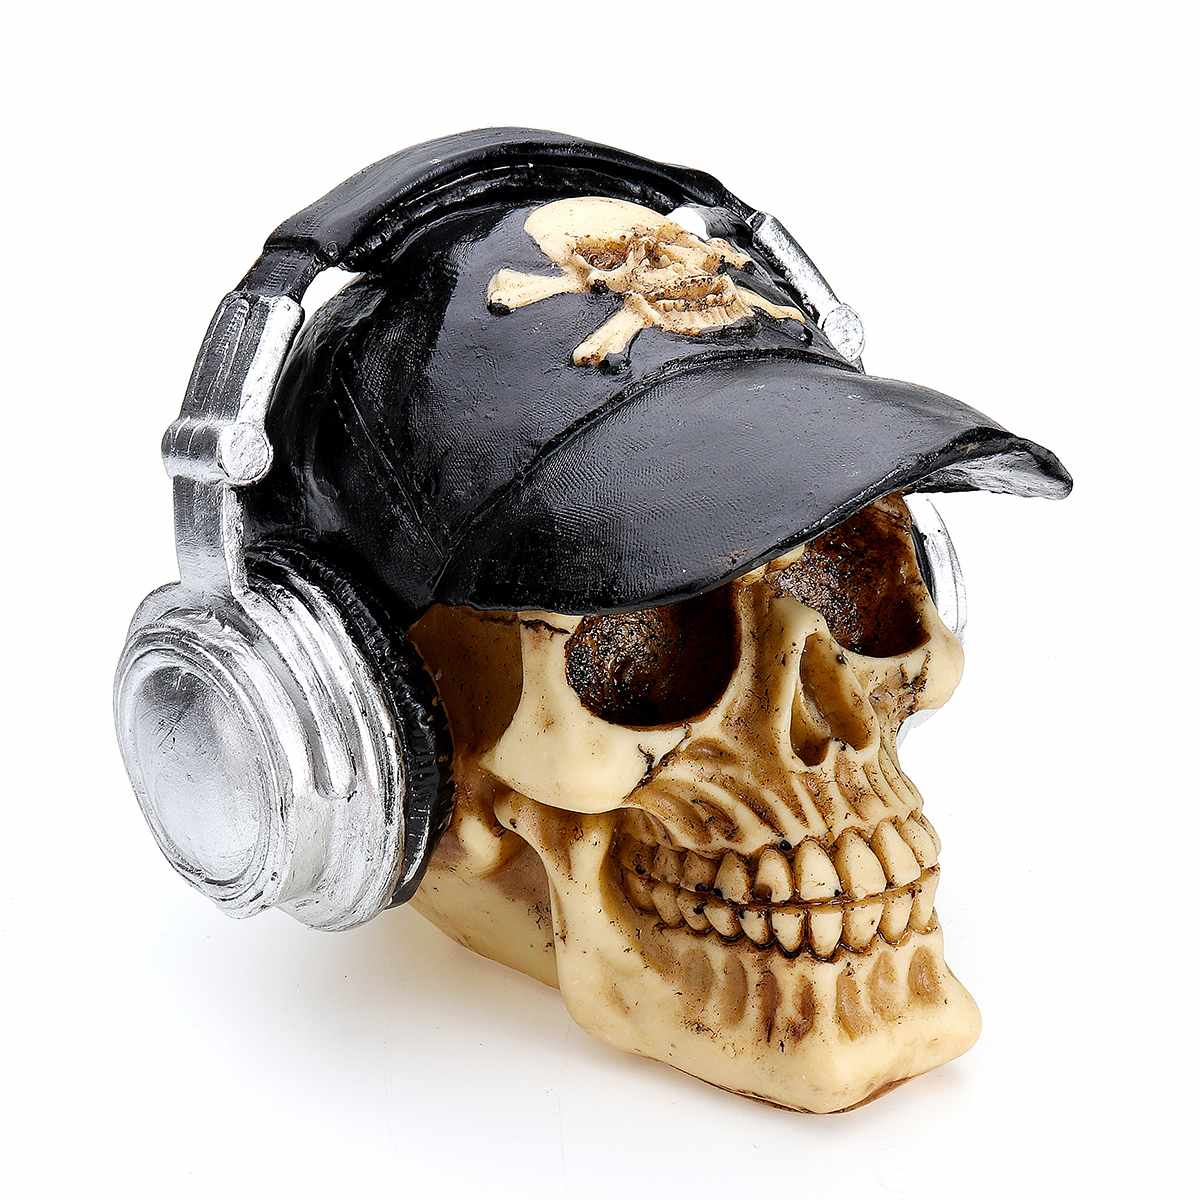 Resin Craft Statues For Decoration Skull With Headphone Skull Figurines Sculpture Home Decoration Accessories